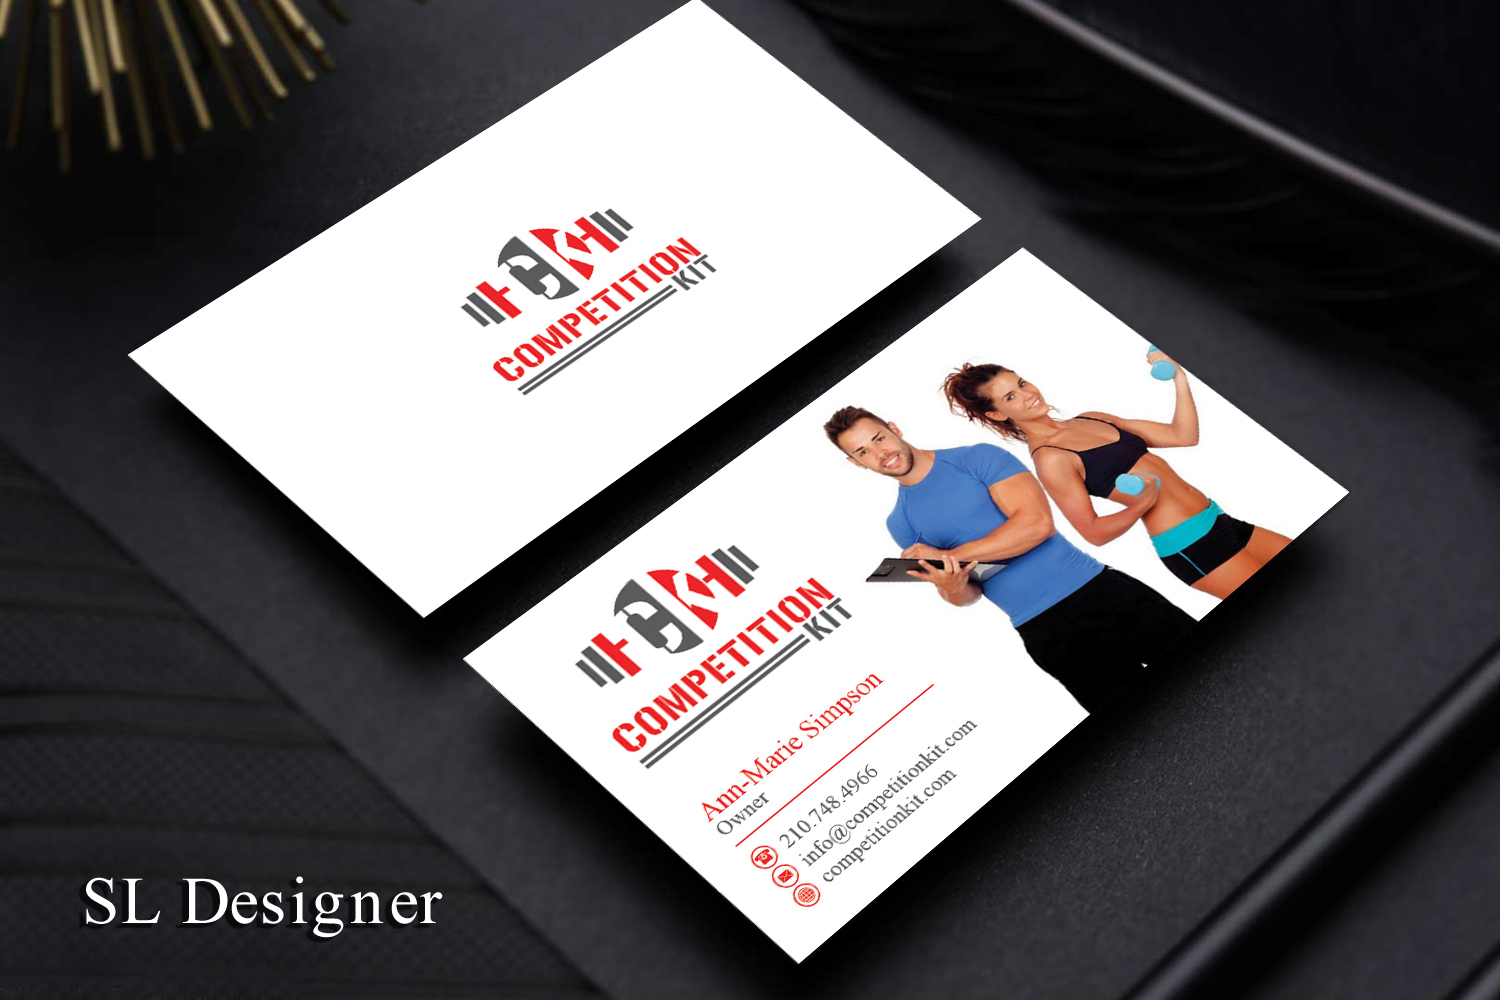 Modern professional business card design for competition kit by sl business card design by sl designer for competition kit design 18209080 reheart Gallery